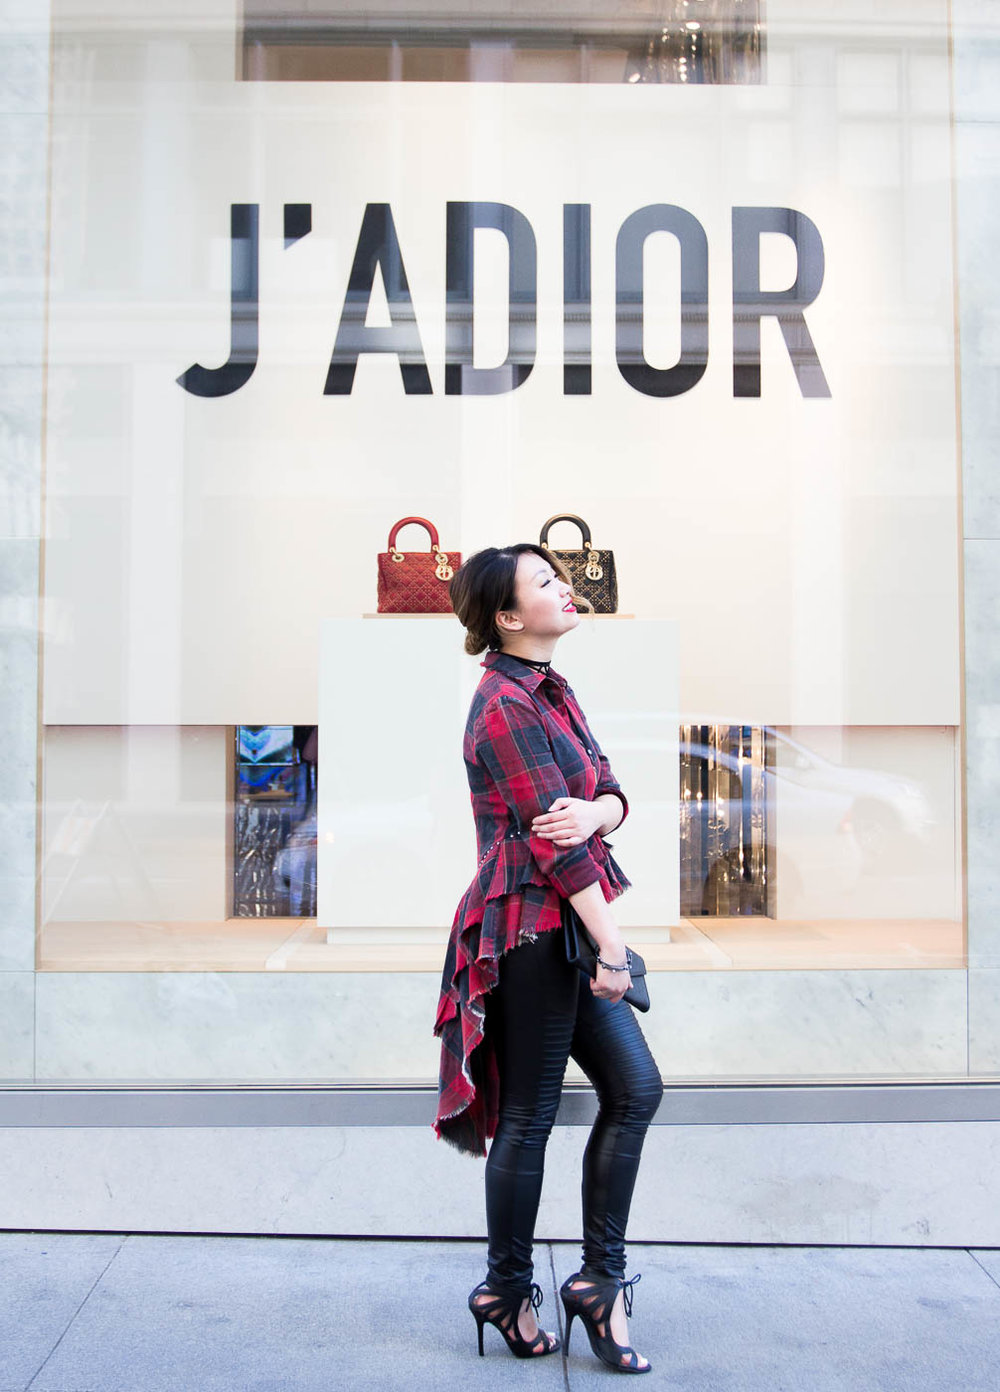 Dior - J'adior | The Chic Diary